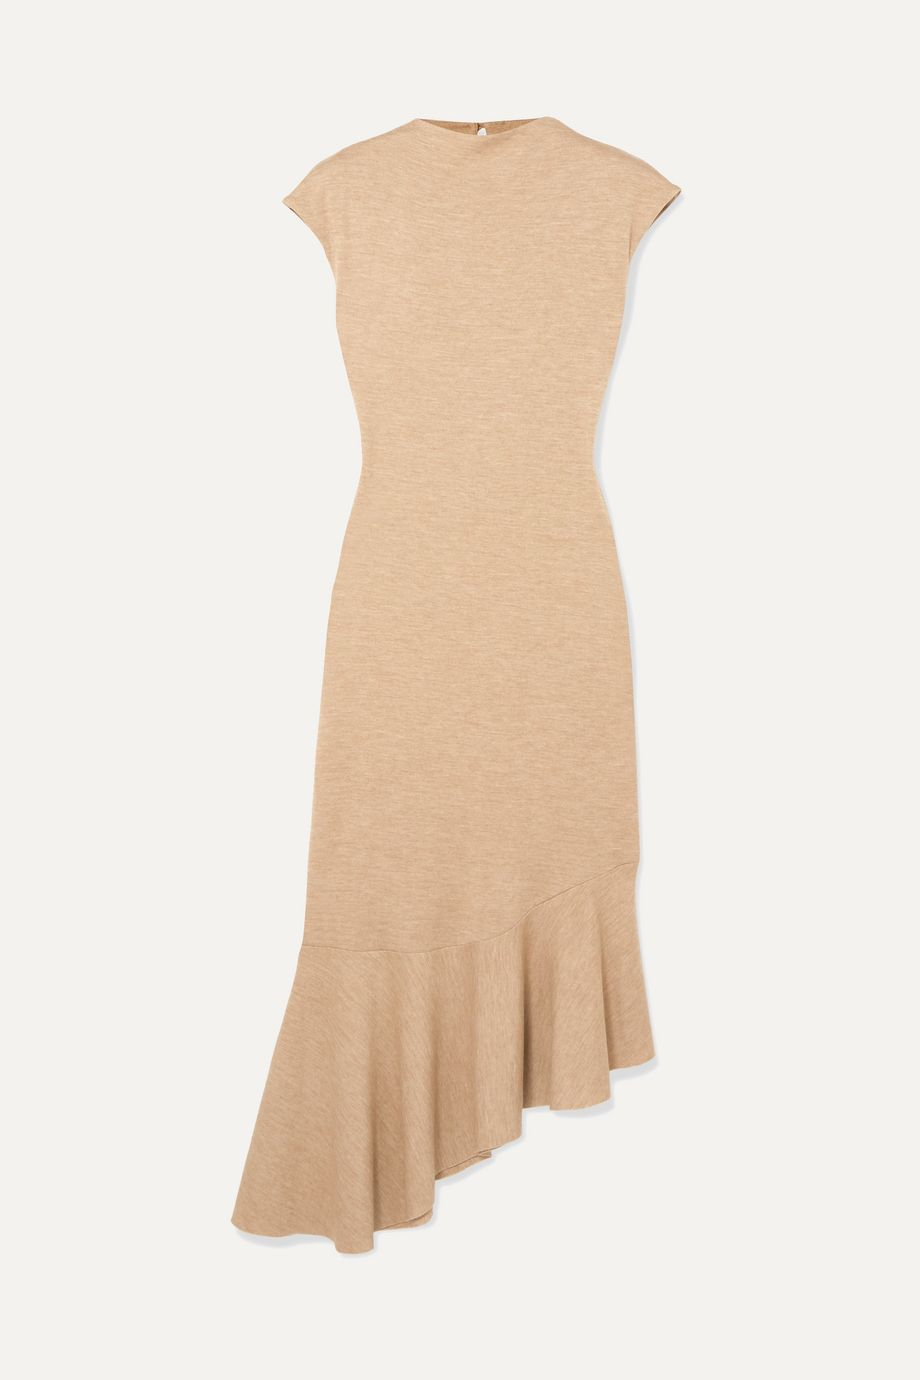 aaizél + NET SUSTAIN asymmetric ruffled mélange jersey midi dress